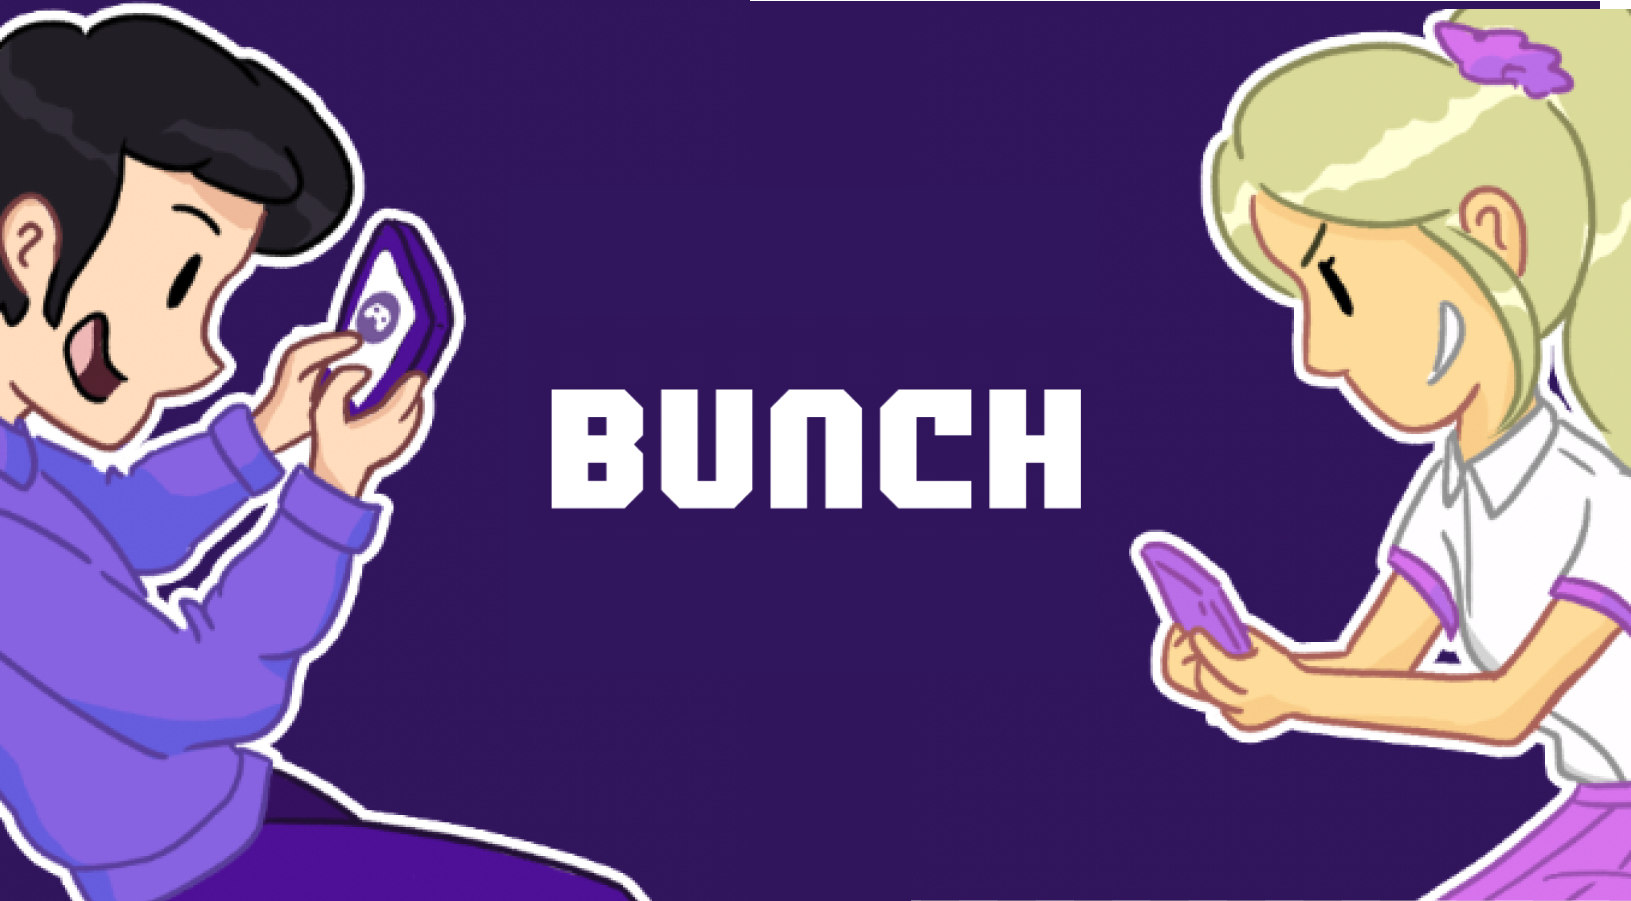 techcrunch.com - Josh Constine - Bunch scores $3.8M to turn mobile games into video chat LAN parties